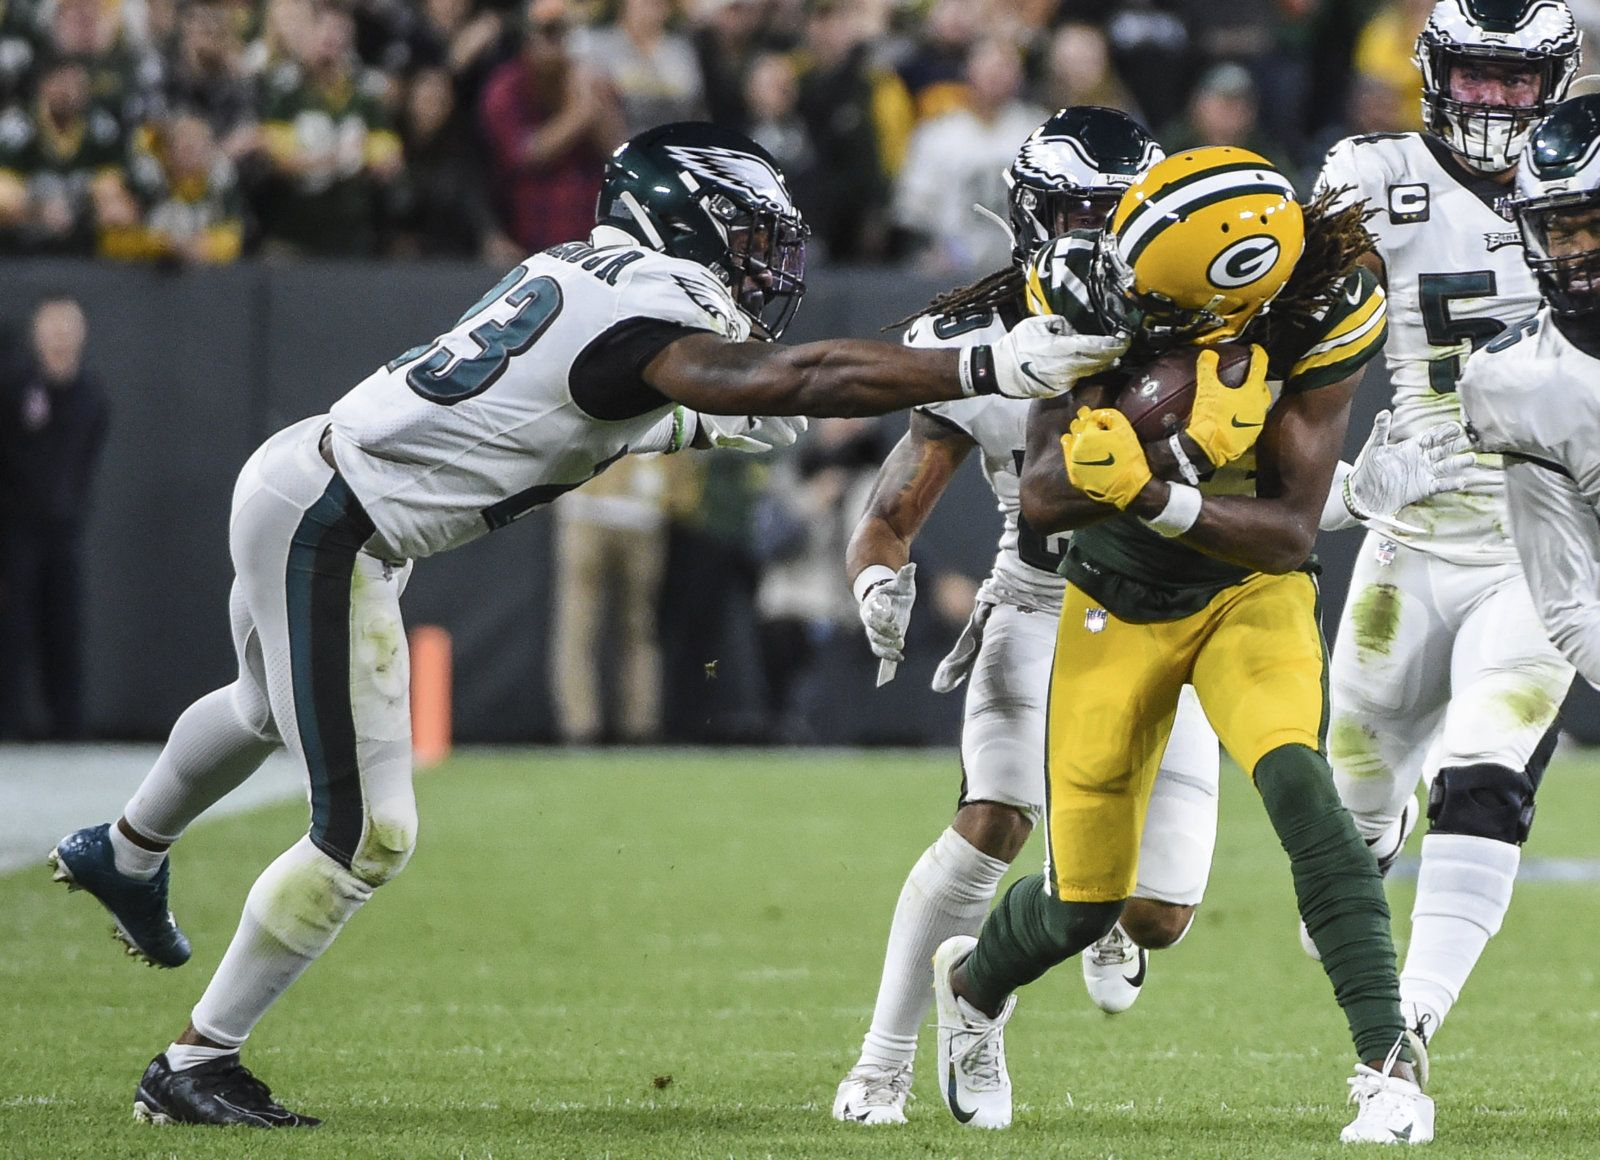 It S Now Rumored Davante Adams Toe Injury Might Keep Him Out Of Cowboys Game Toe Injuries Cowboy Games Raiders